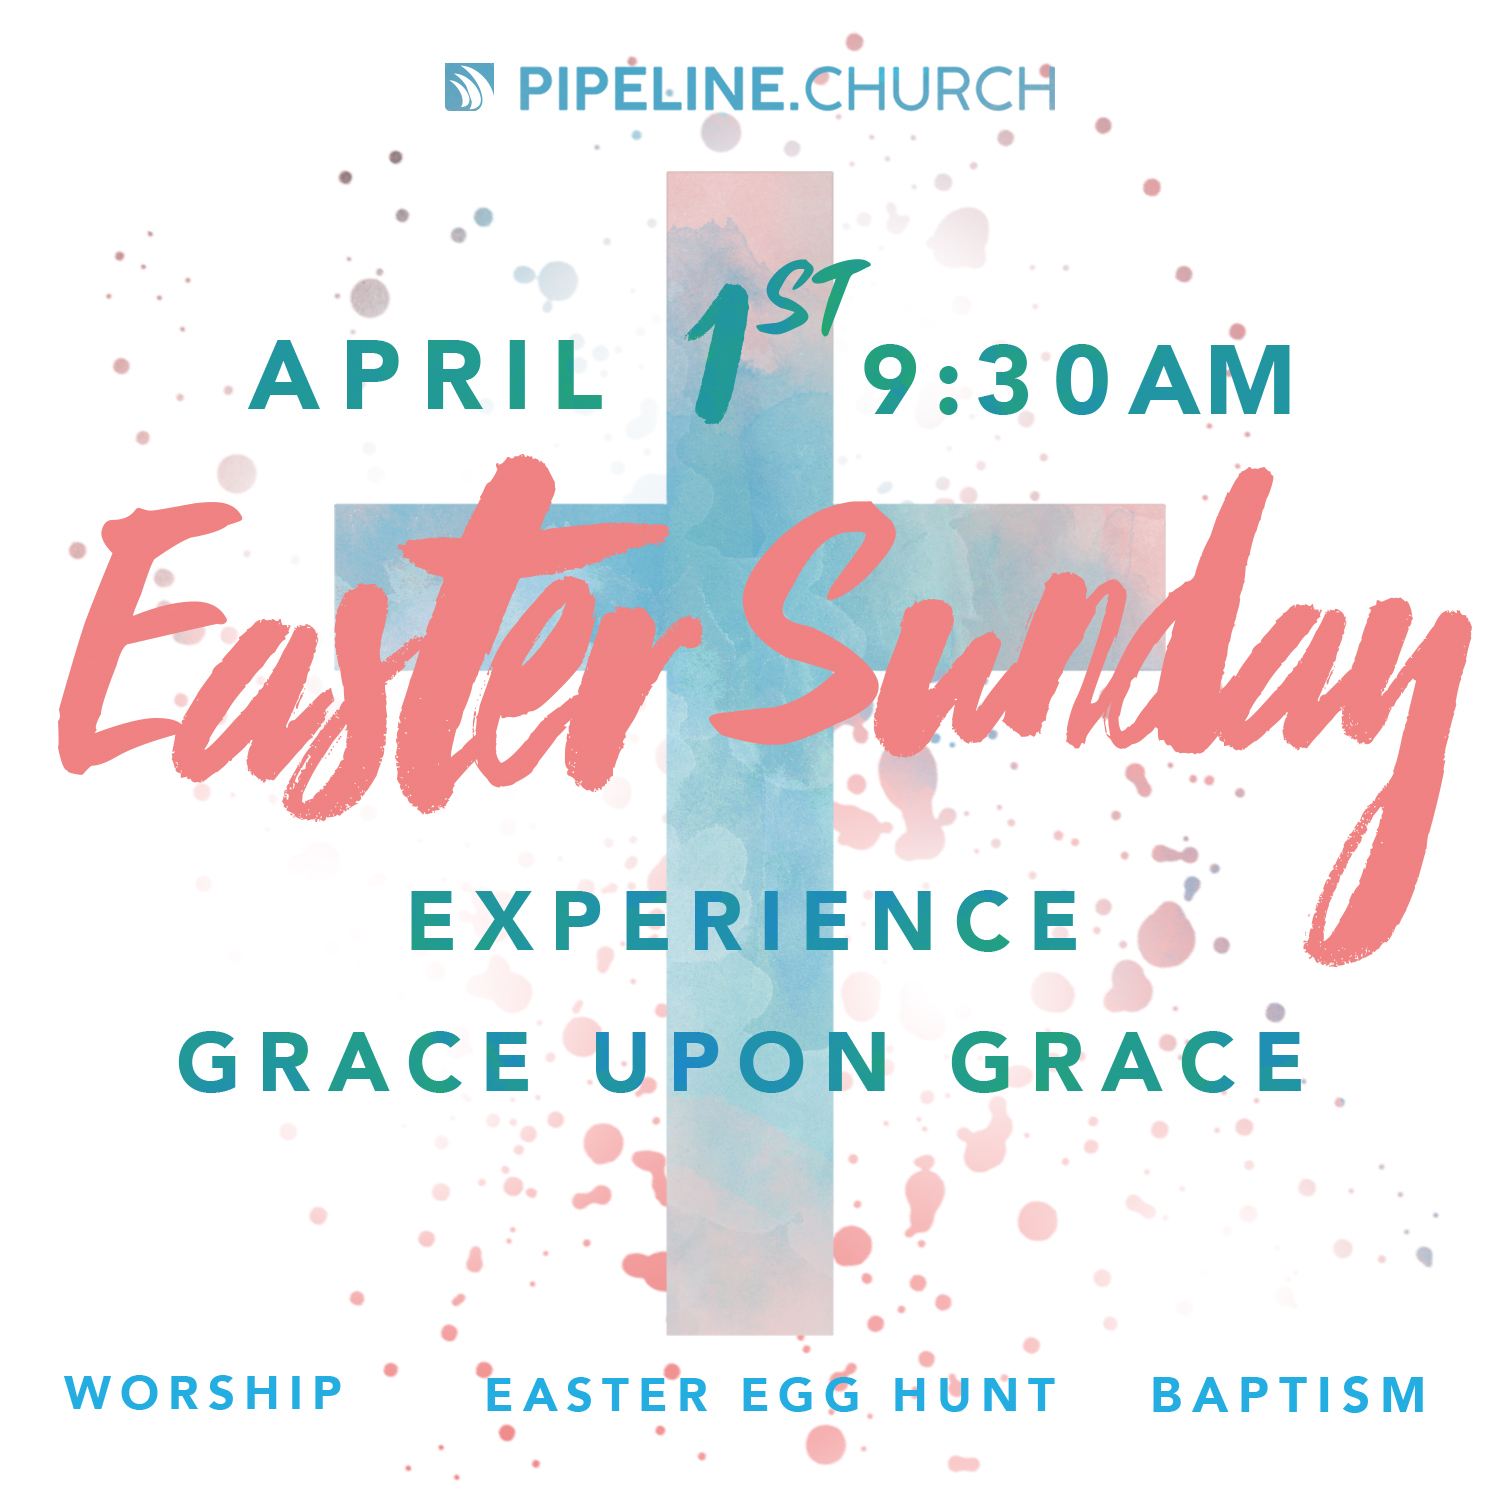 Invite someone to Easter Sunday Service! In order to send this to a friend or family member, save the image and pass it on!